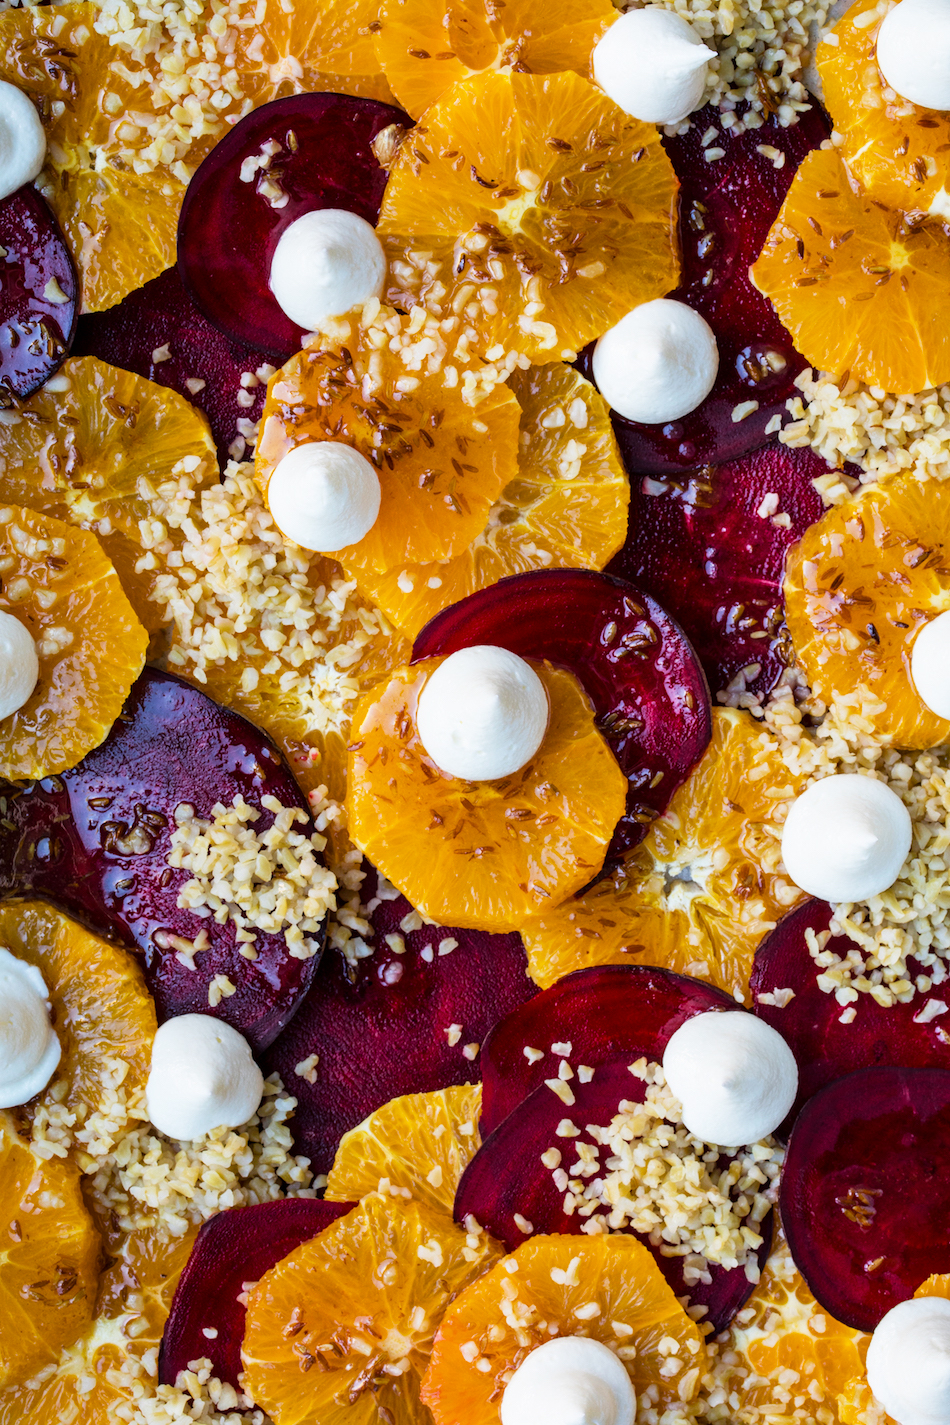 orange and beet salad with honey cumin dressing and whipped goat's cheese